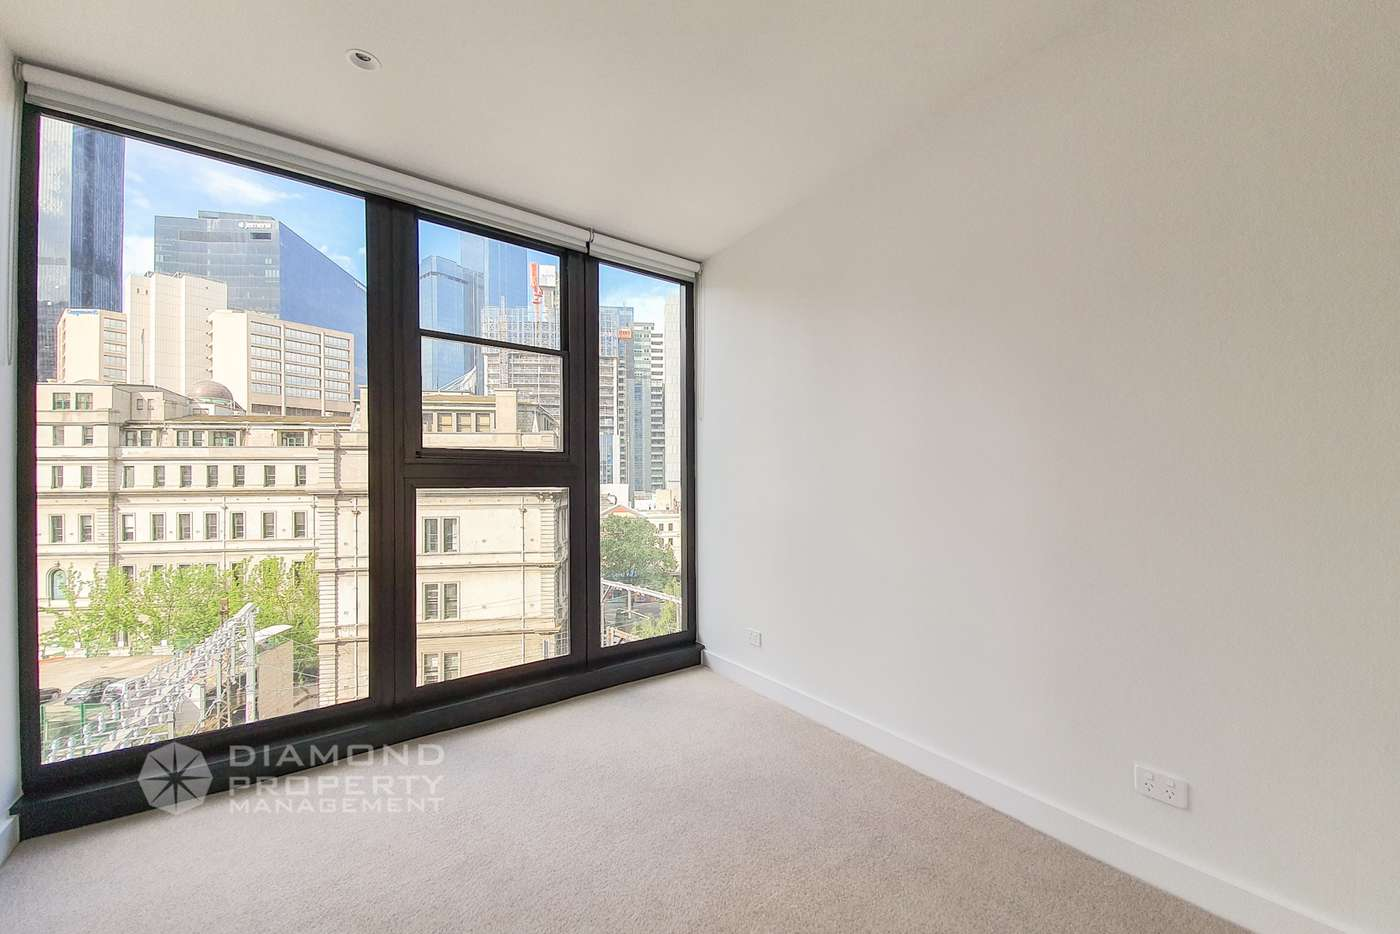 Seventh view of Homely apartment listing, 302/628 Flinders Street, Docklands VIC 3008